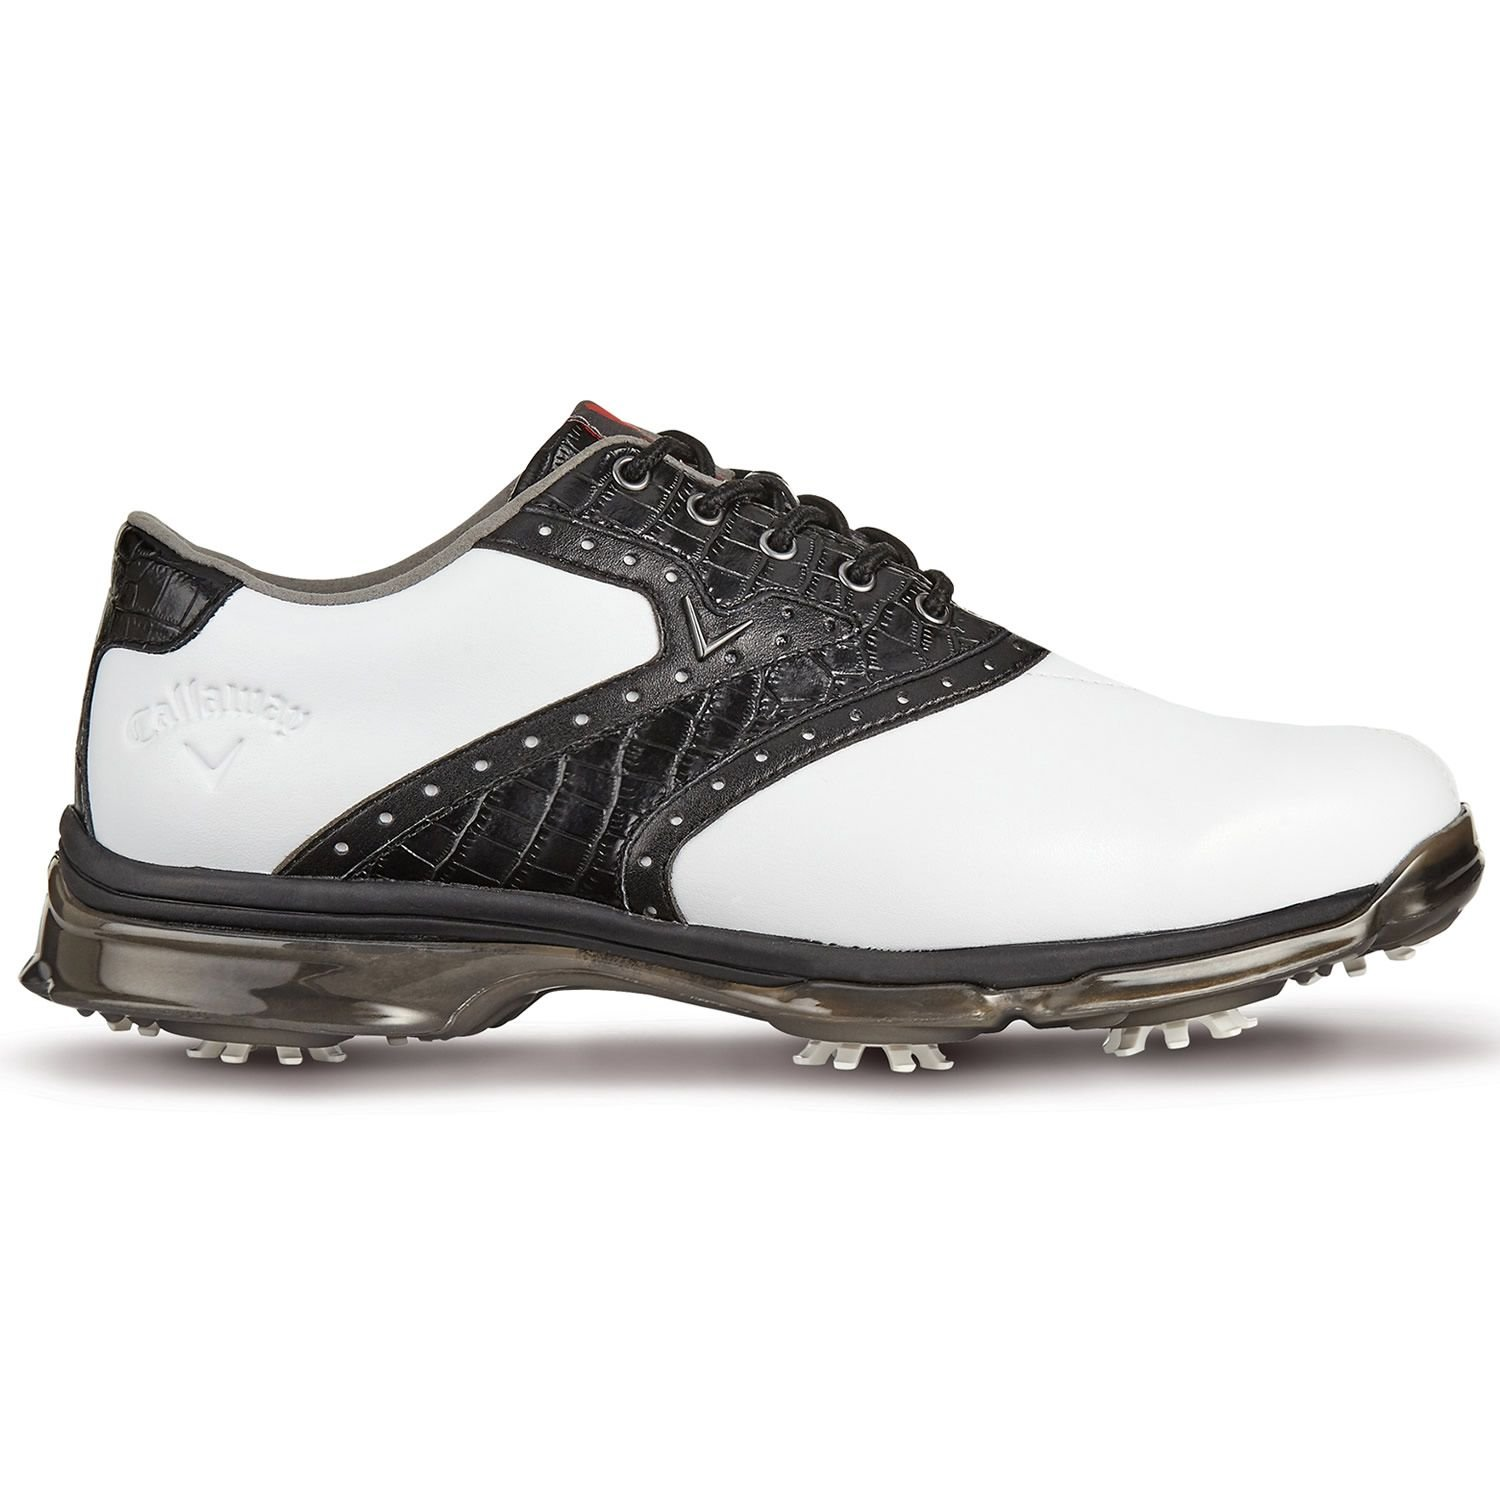 85e0606cf535 Callaway 2018 X Nitro PT Waterproof Mens Spikes Golf Shoes-Leather ...